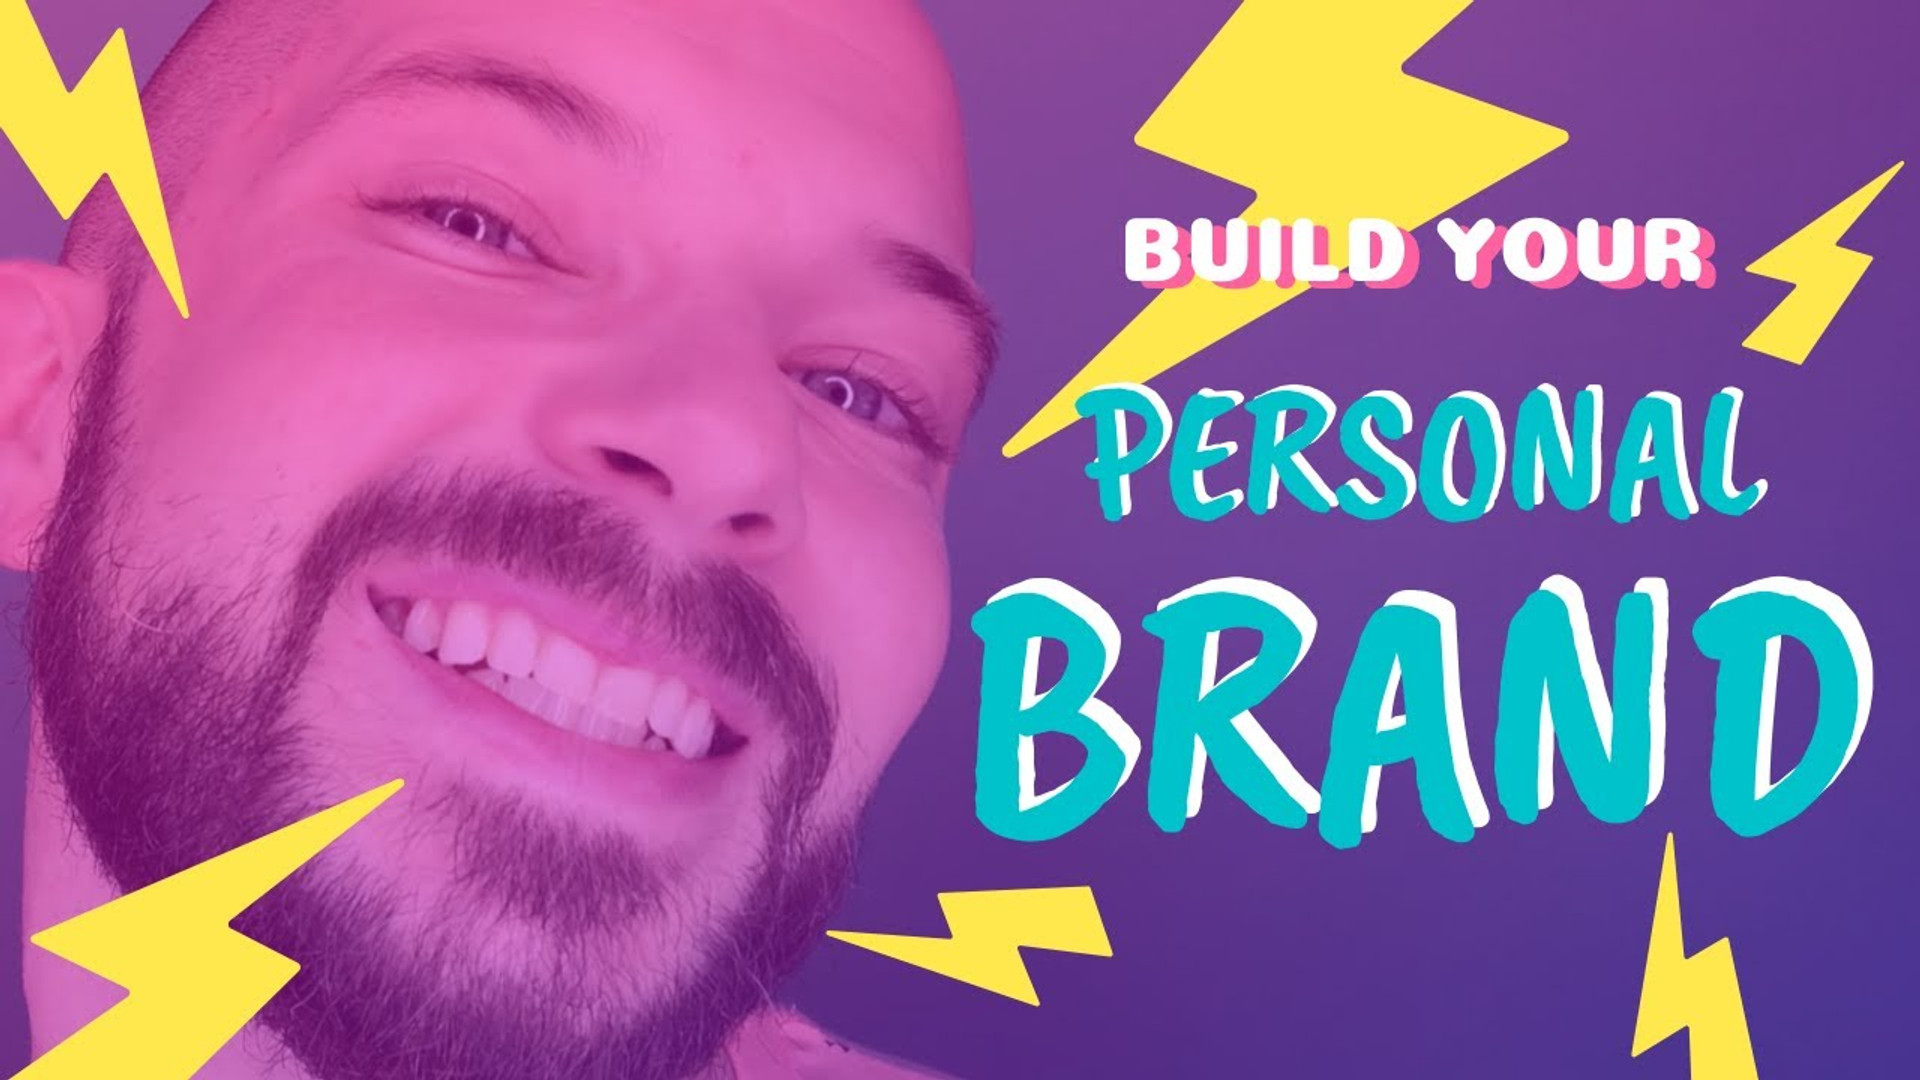 Build You Personal Brand